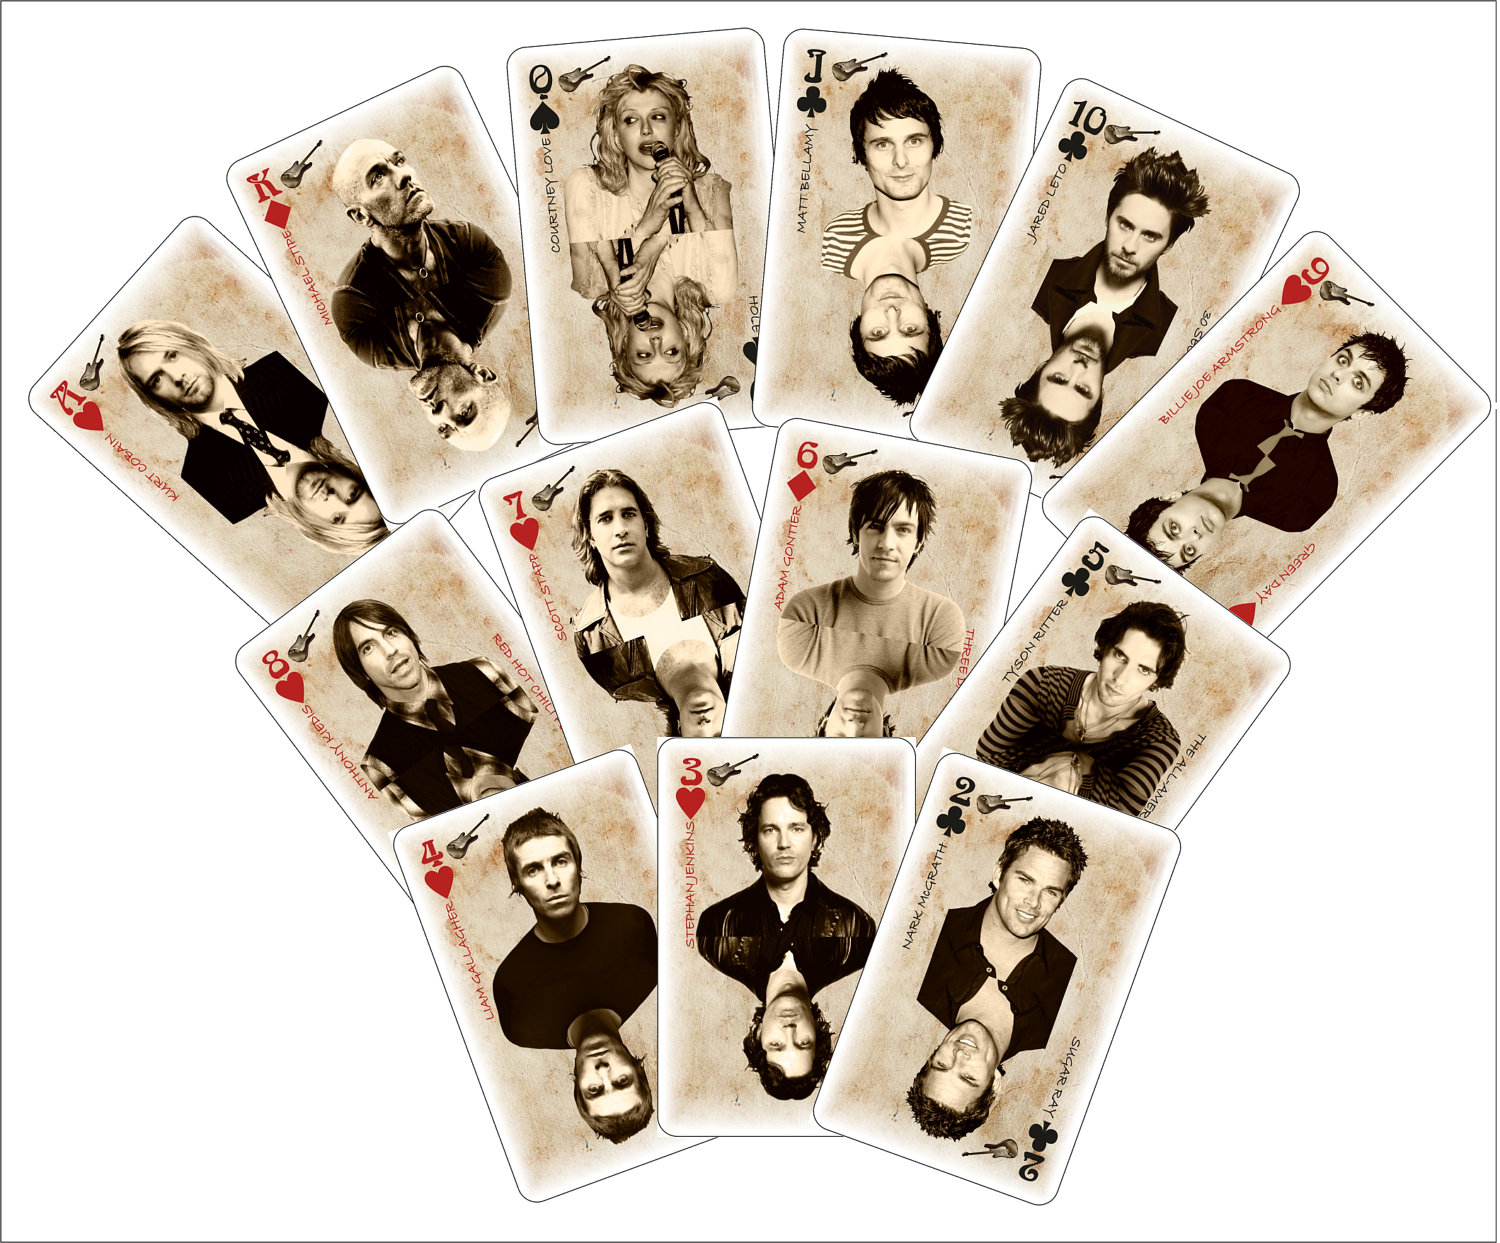 Deck of 54 Playing Cards, Digital Art, Print, Art Illustration, Alternative Rock,Nirvana,Card Deck, Punk, Grunge, Music, Vintage, 2x3 print